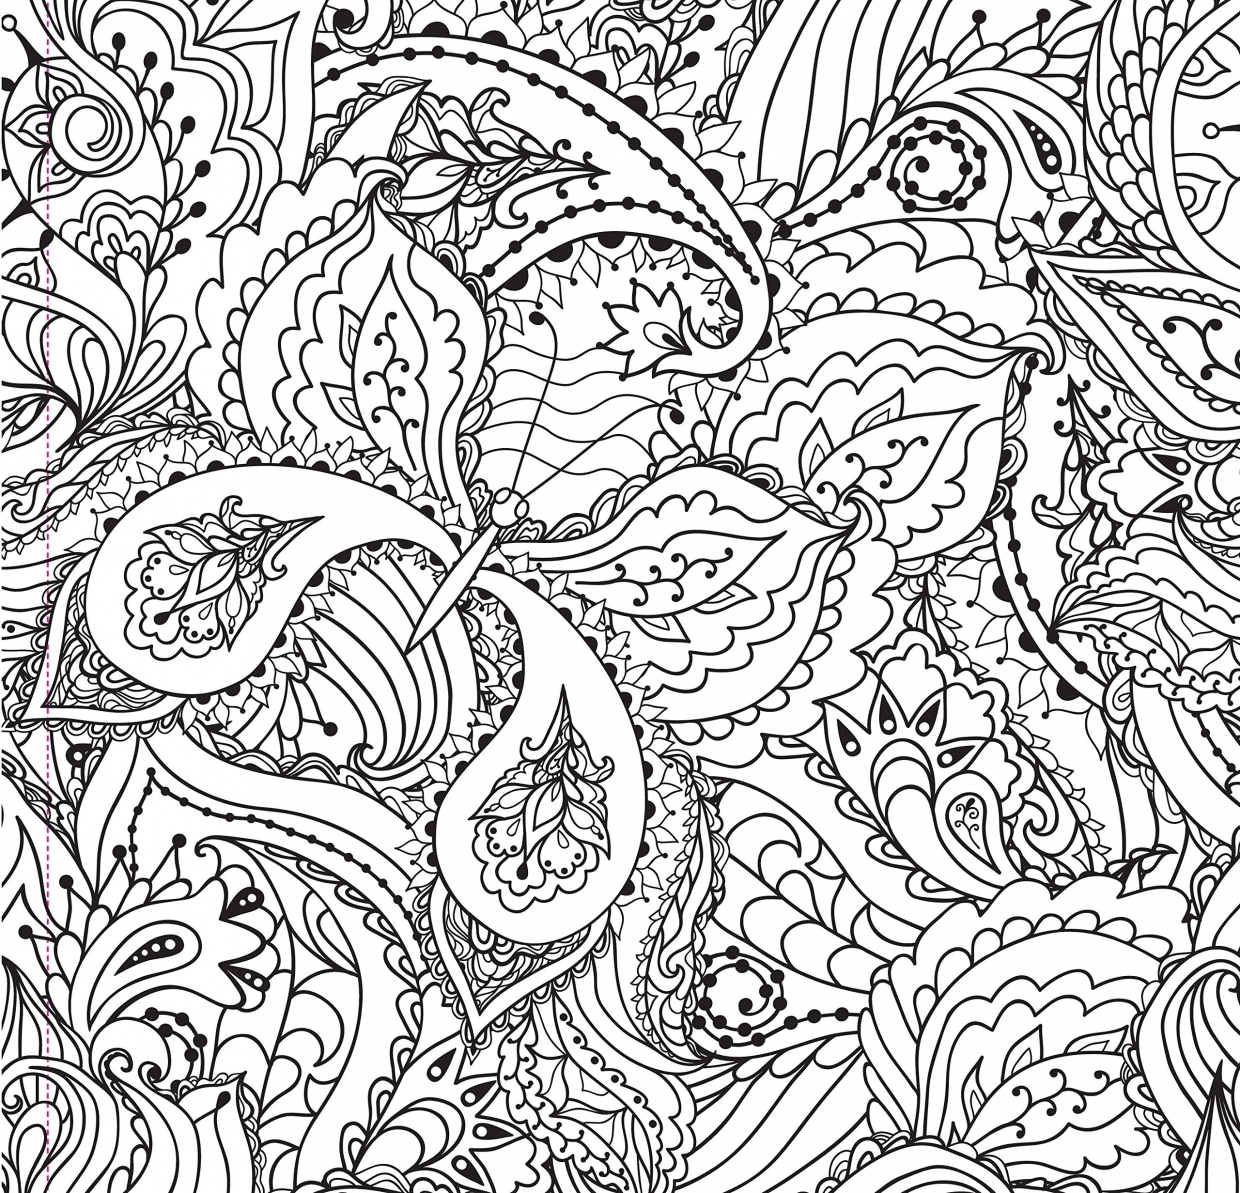 Printable Complex Coloring Pages Fair Get This Free Complex Coloring Pages Printable Xbrt5 Design Decoration